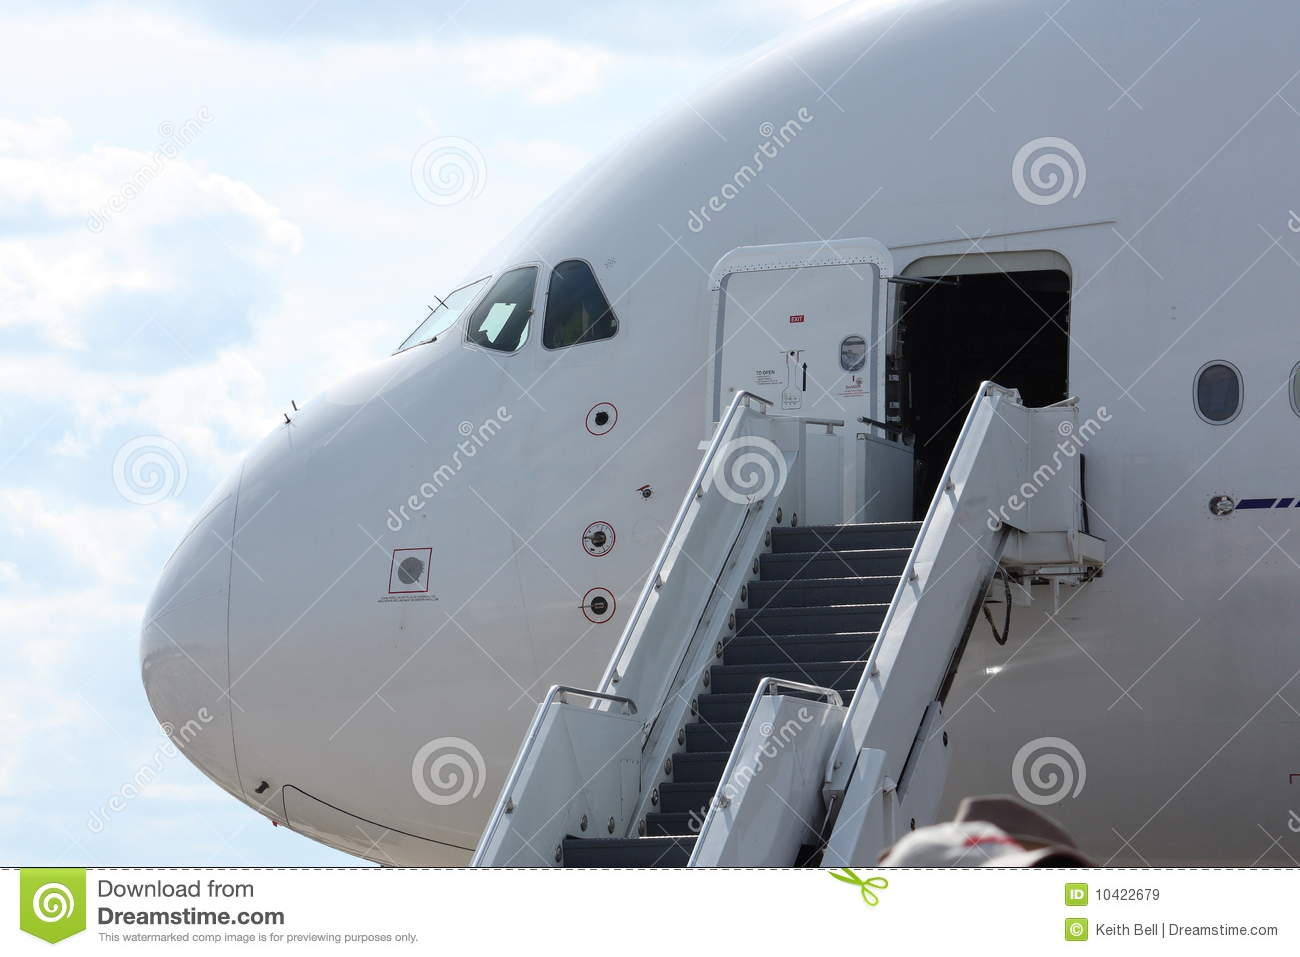 Plane stairs clipart.